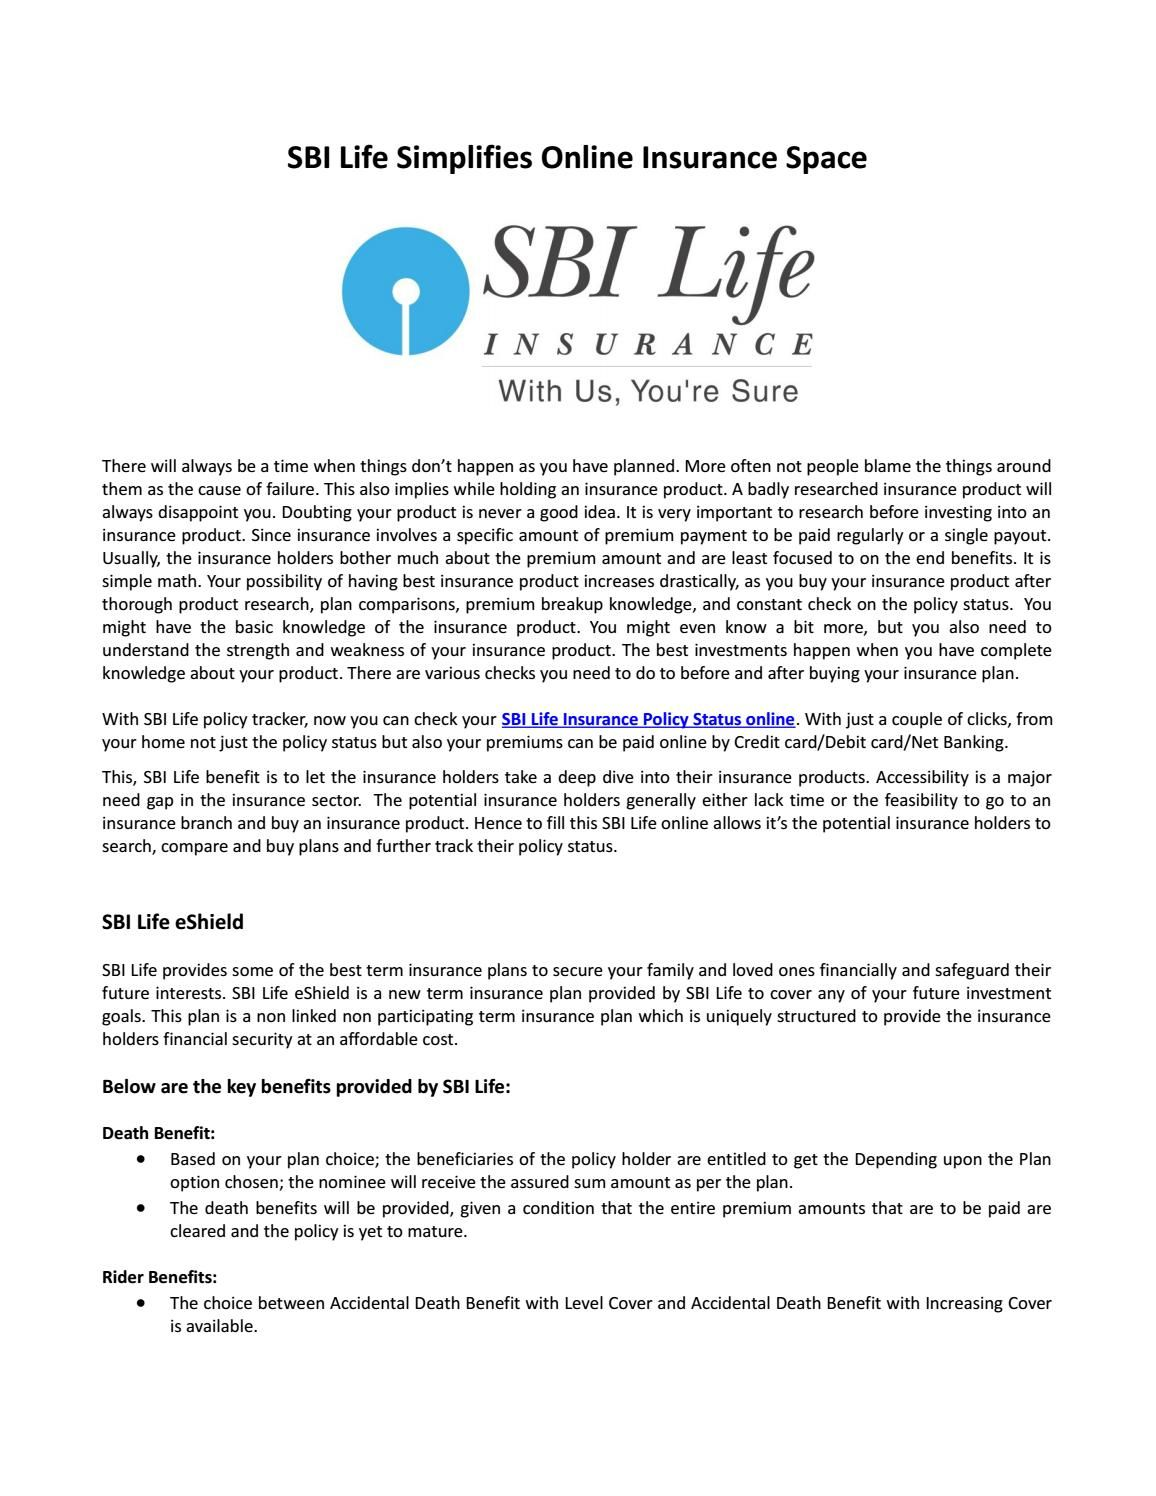 Accidental Life Insurance Quotes Get Update Online  Sbi Life Insurance Policy Status